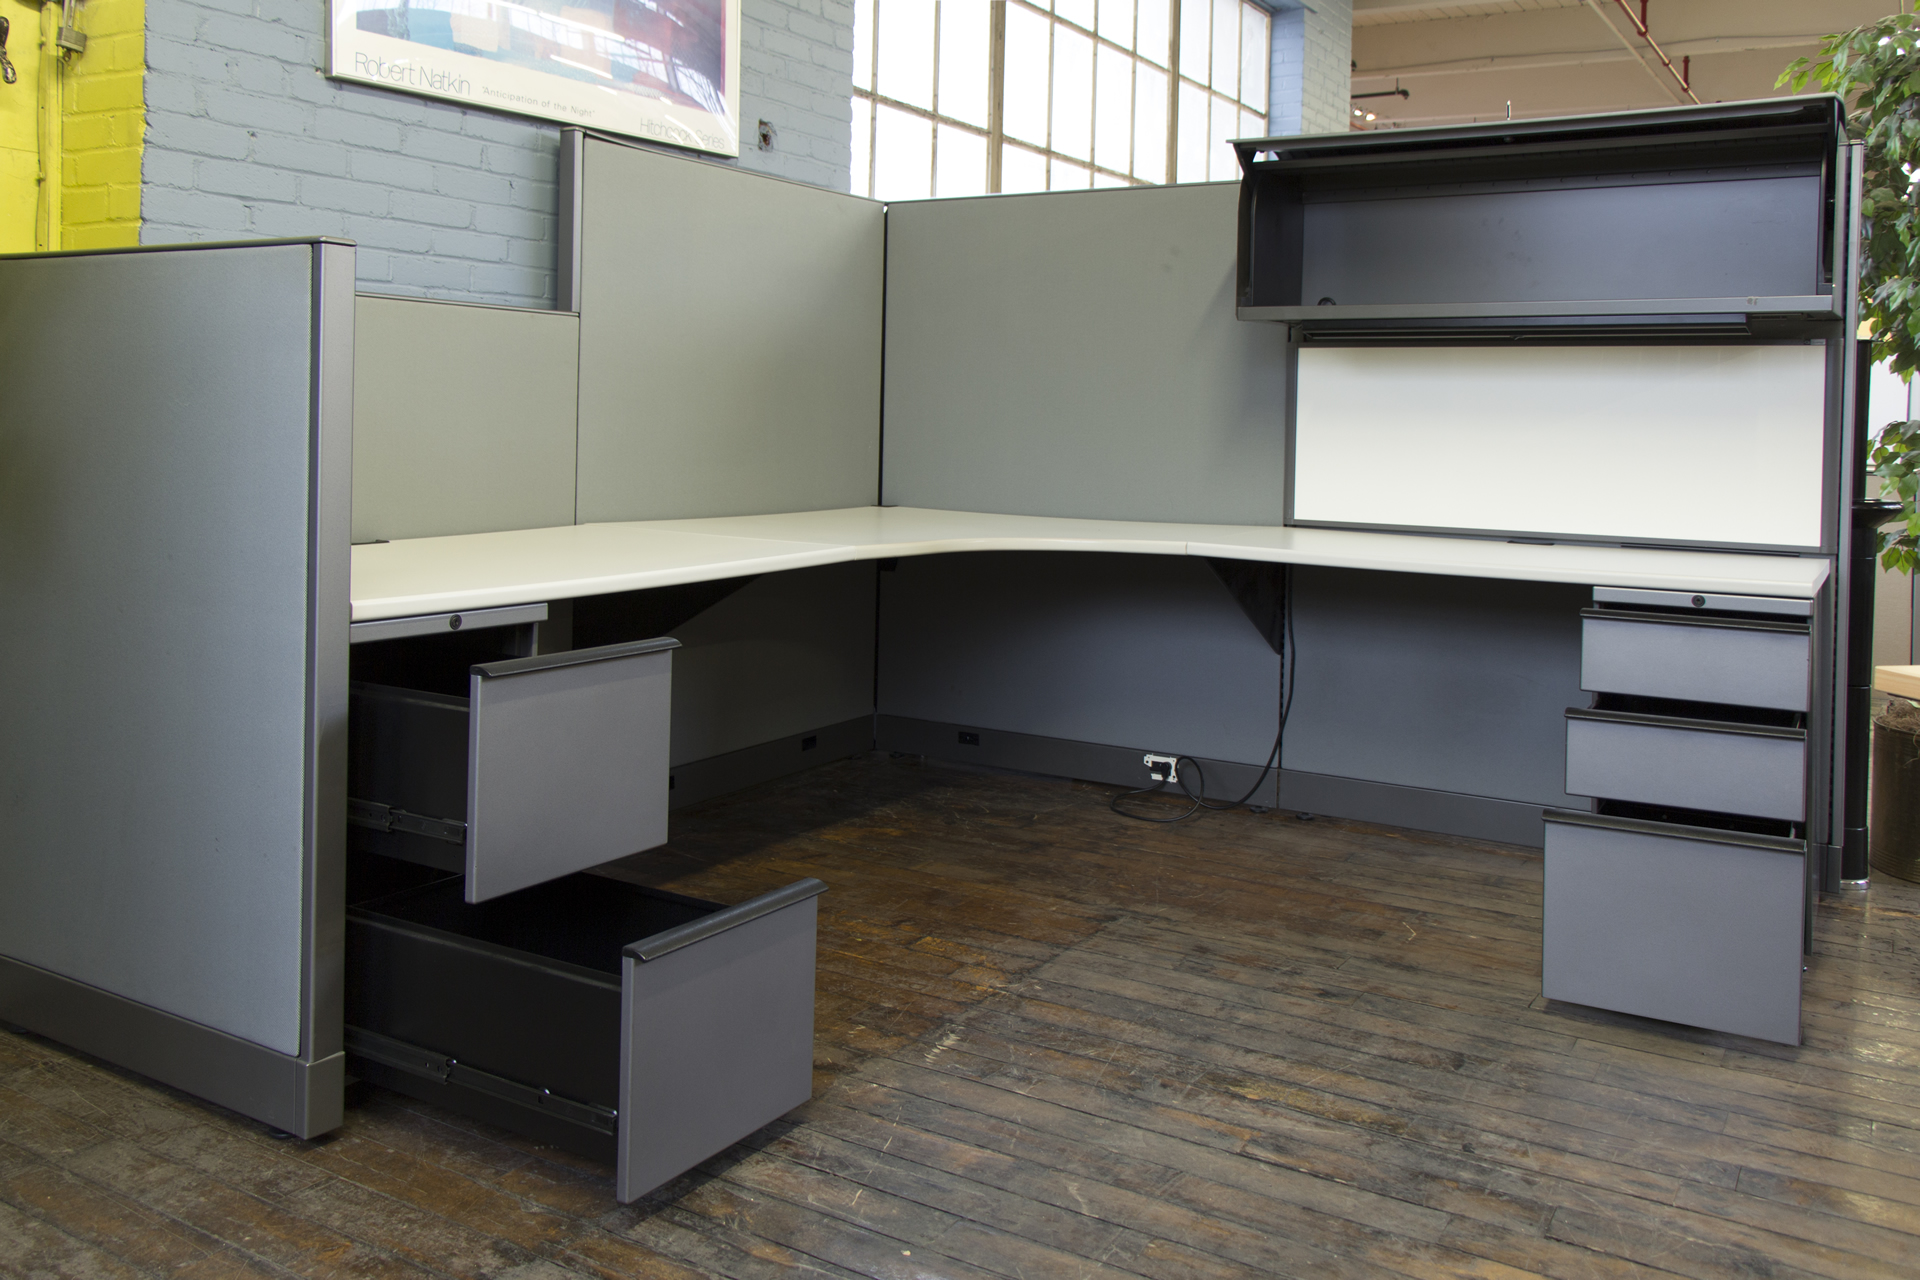 peartreeofficefurniture_peartreeofficefurniture_mg_30961.jpg